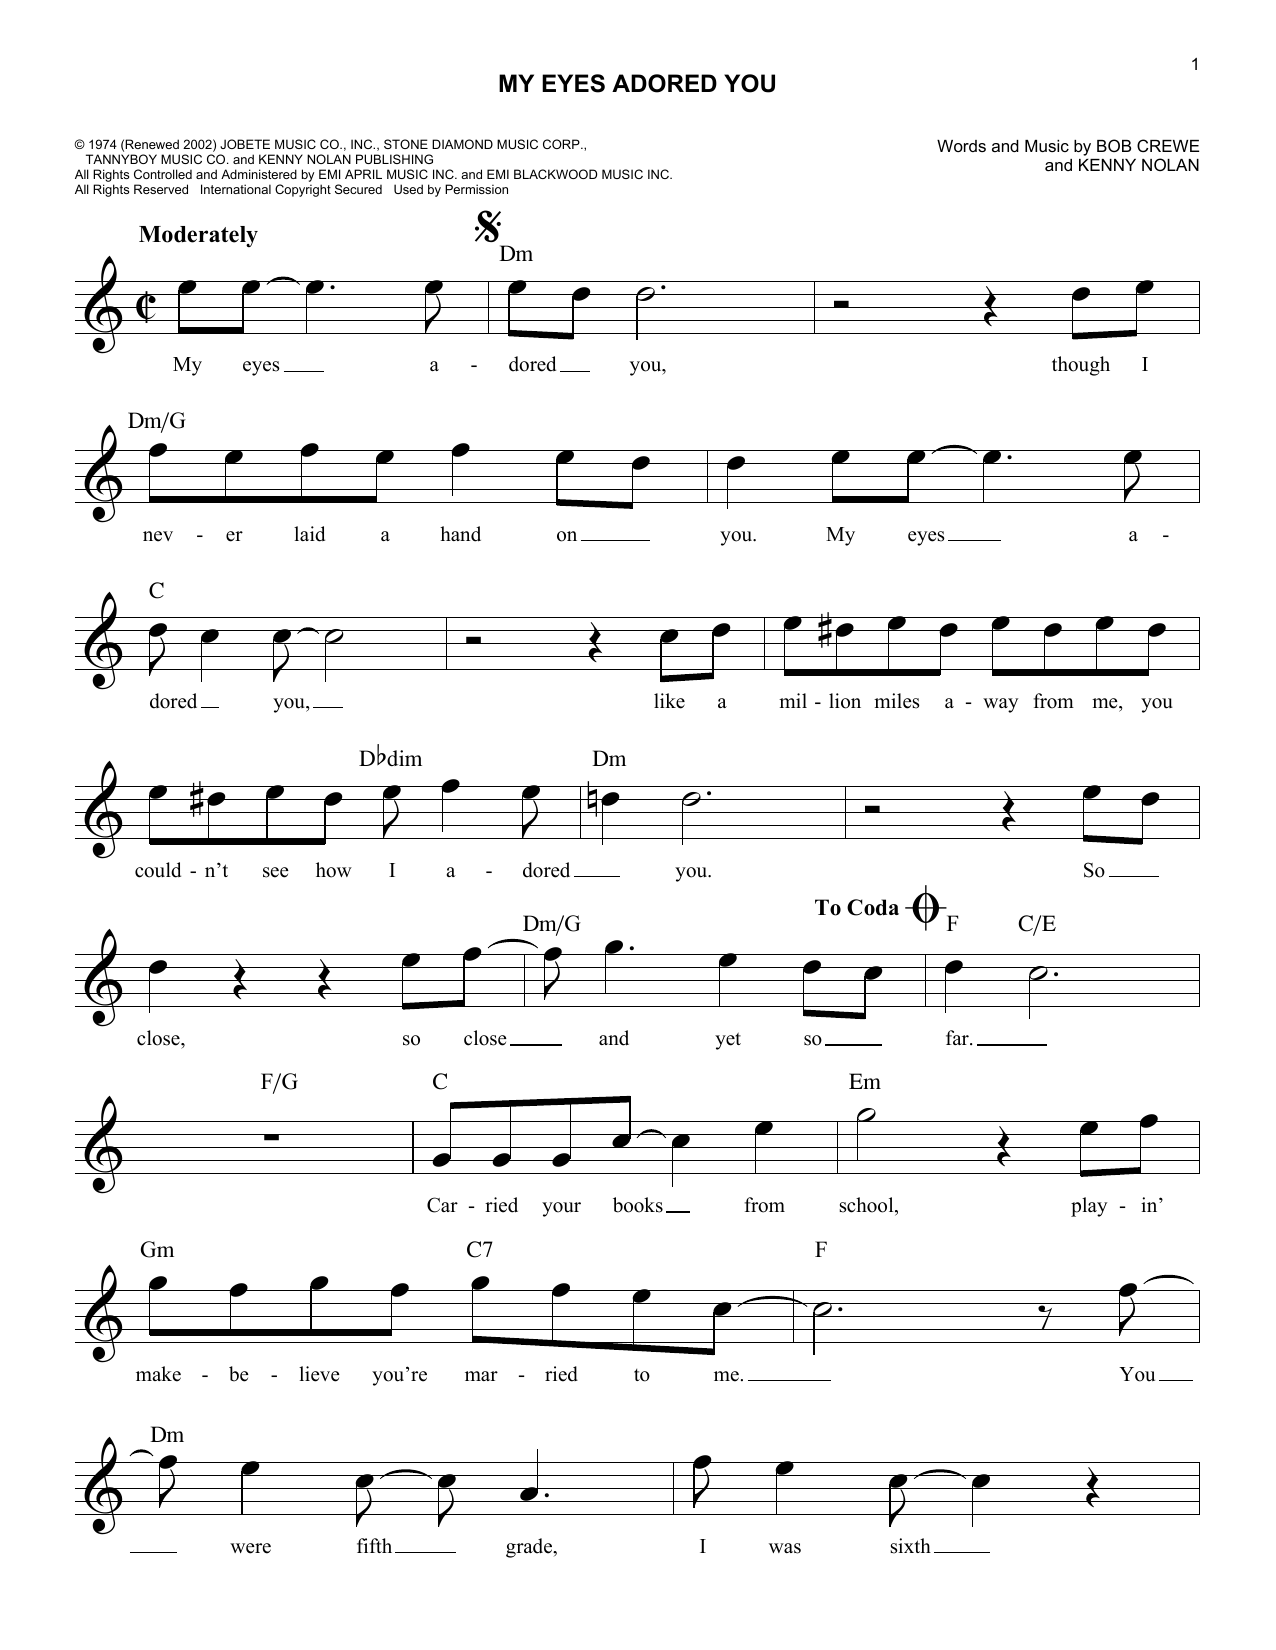 Frankie Valli My Eyes Adored You sheet music notes and chords. Download Printable PDF.